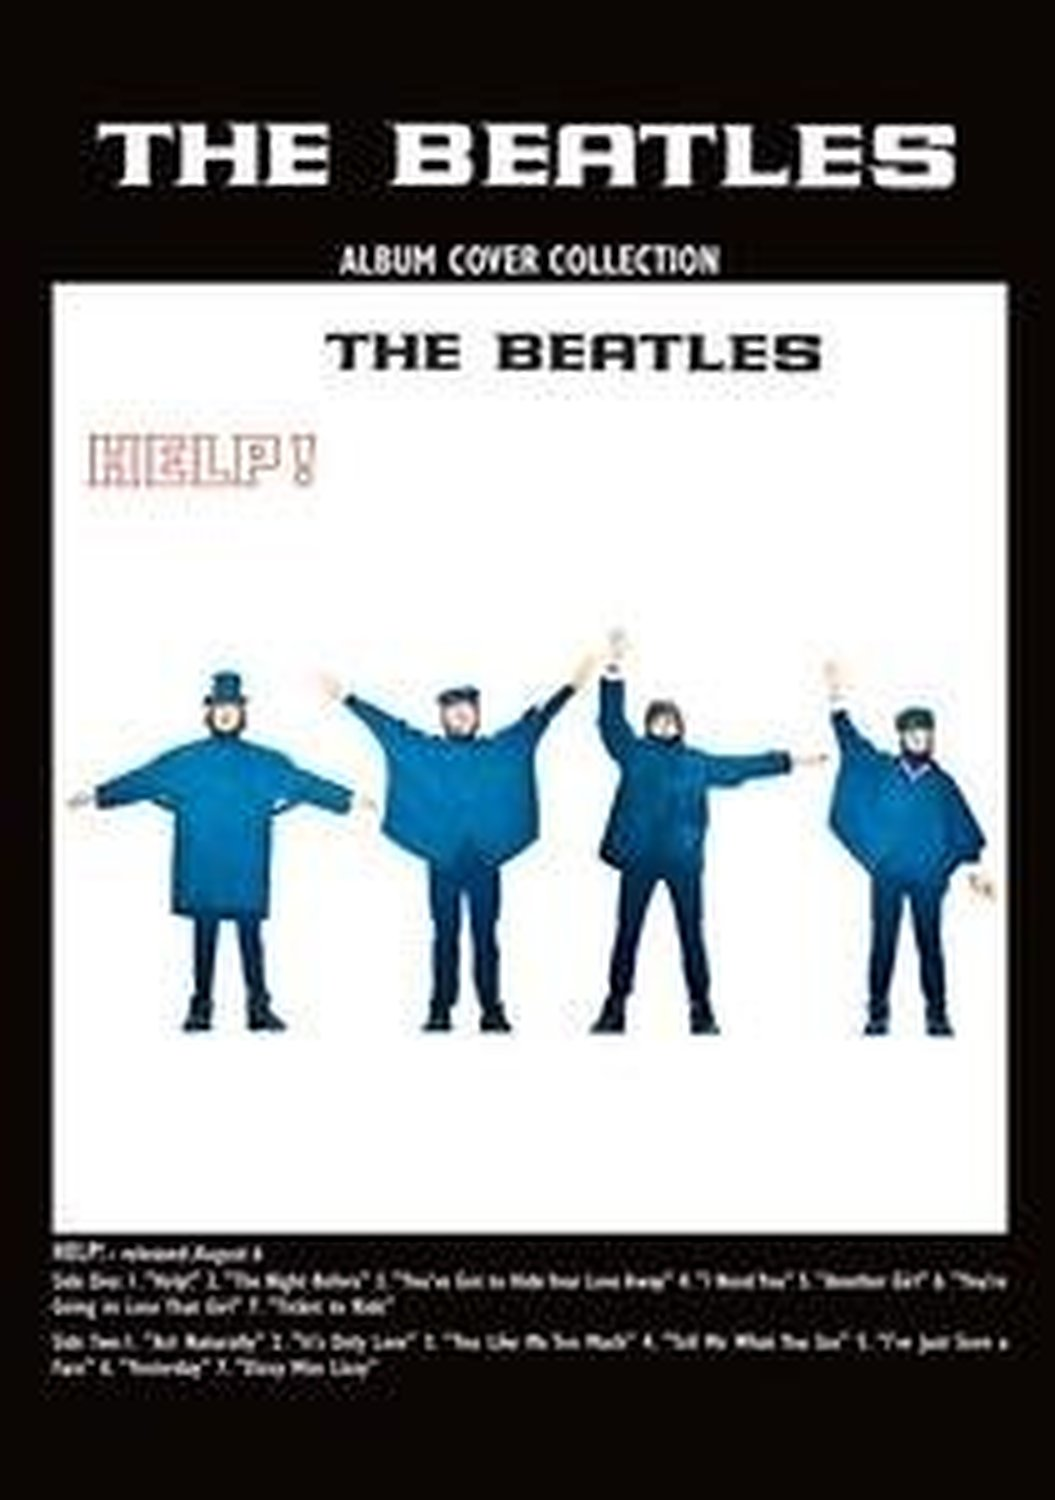 Details about The Beatles Help Album Cover Postcard Fan Gift Idea 100%  Official Merchandise